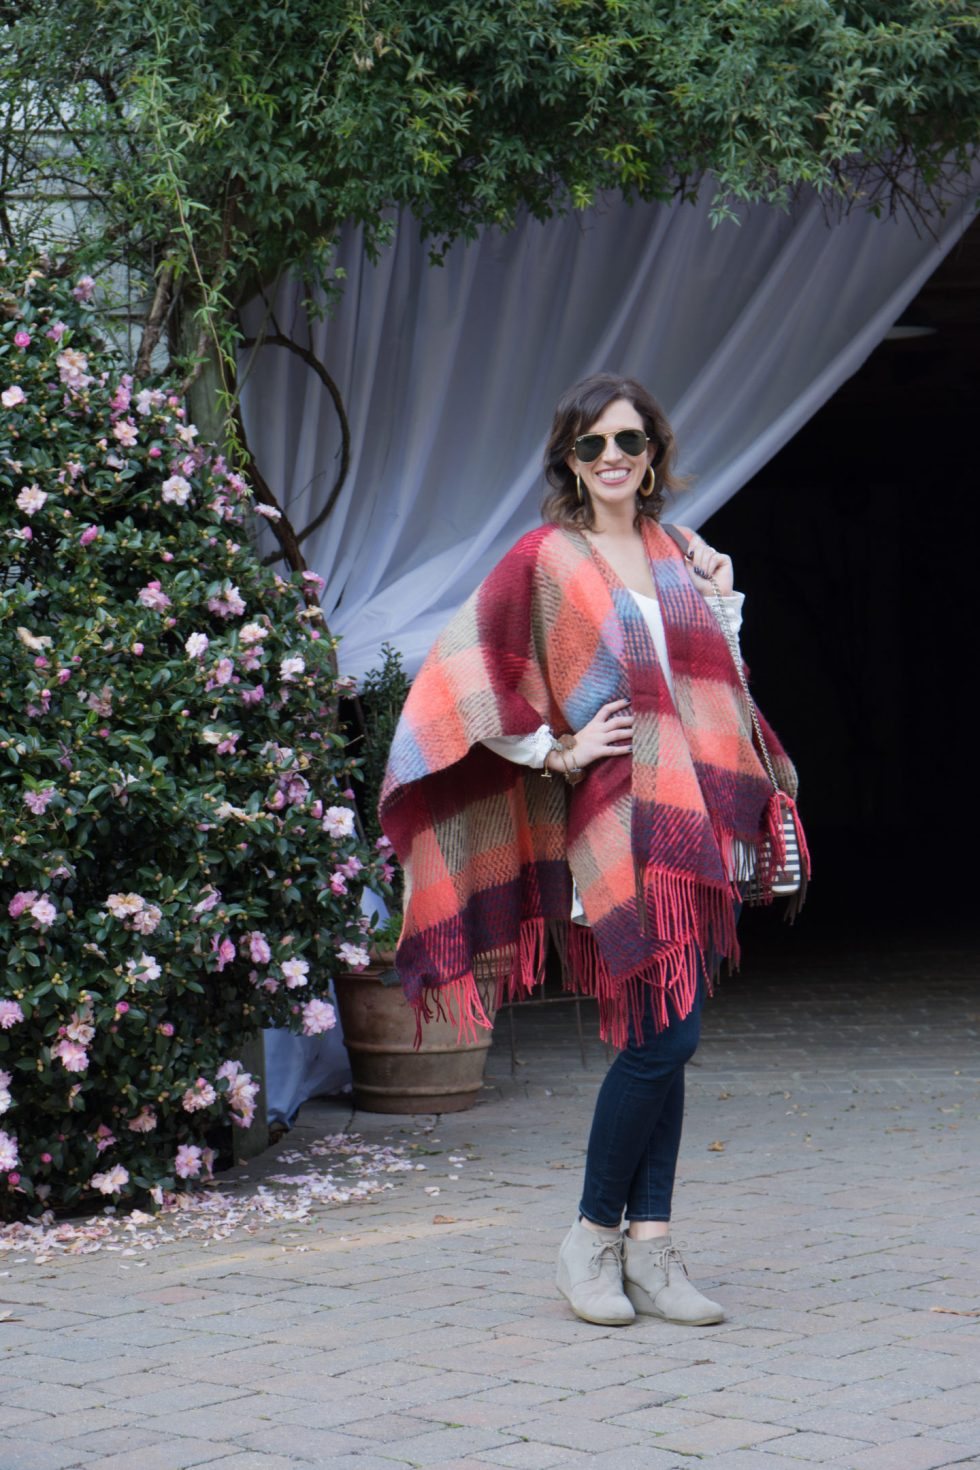 What to Wear for Traveling in Chilly Weather